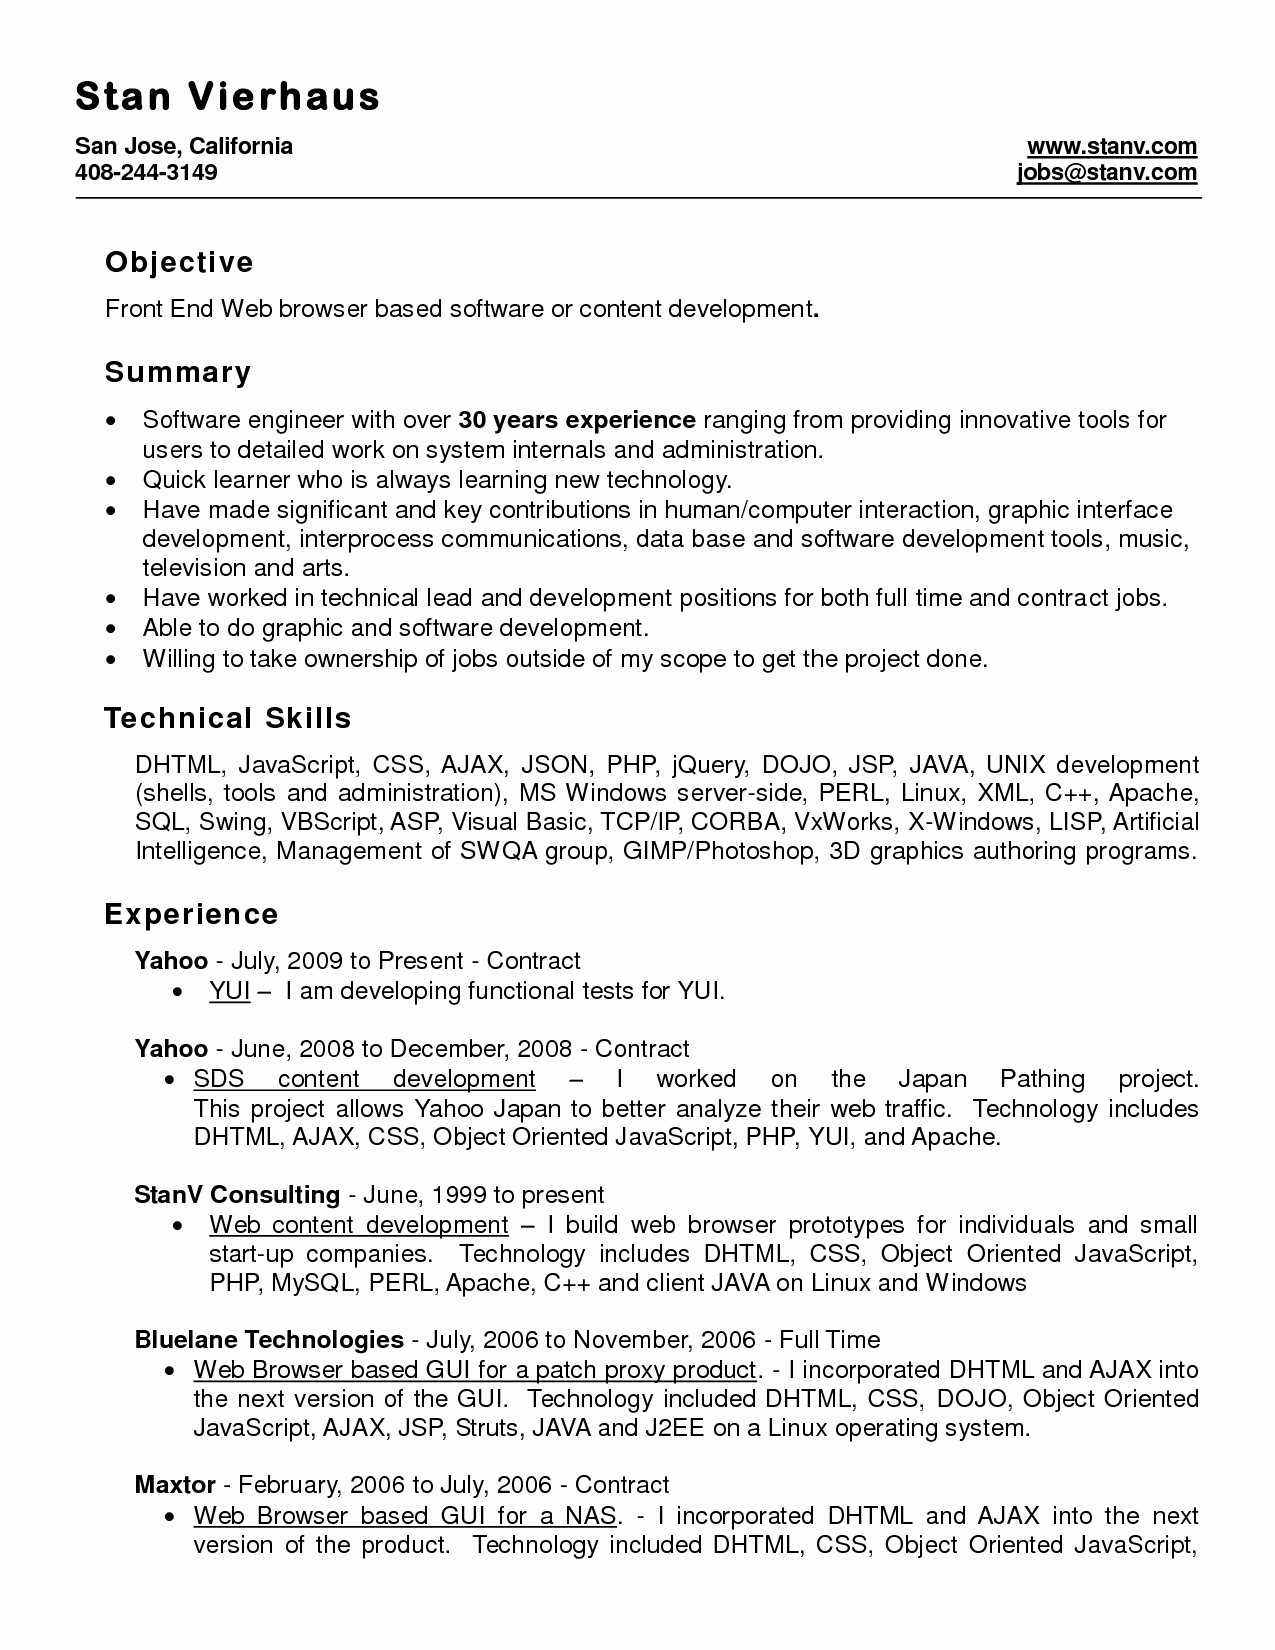 Microsoft Word Resume Template 2017 Awesome Resume Template Microsoft Word 2017